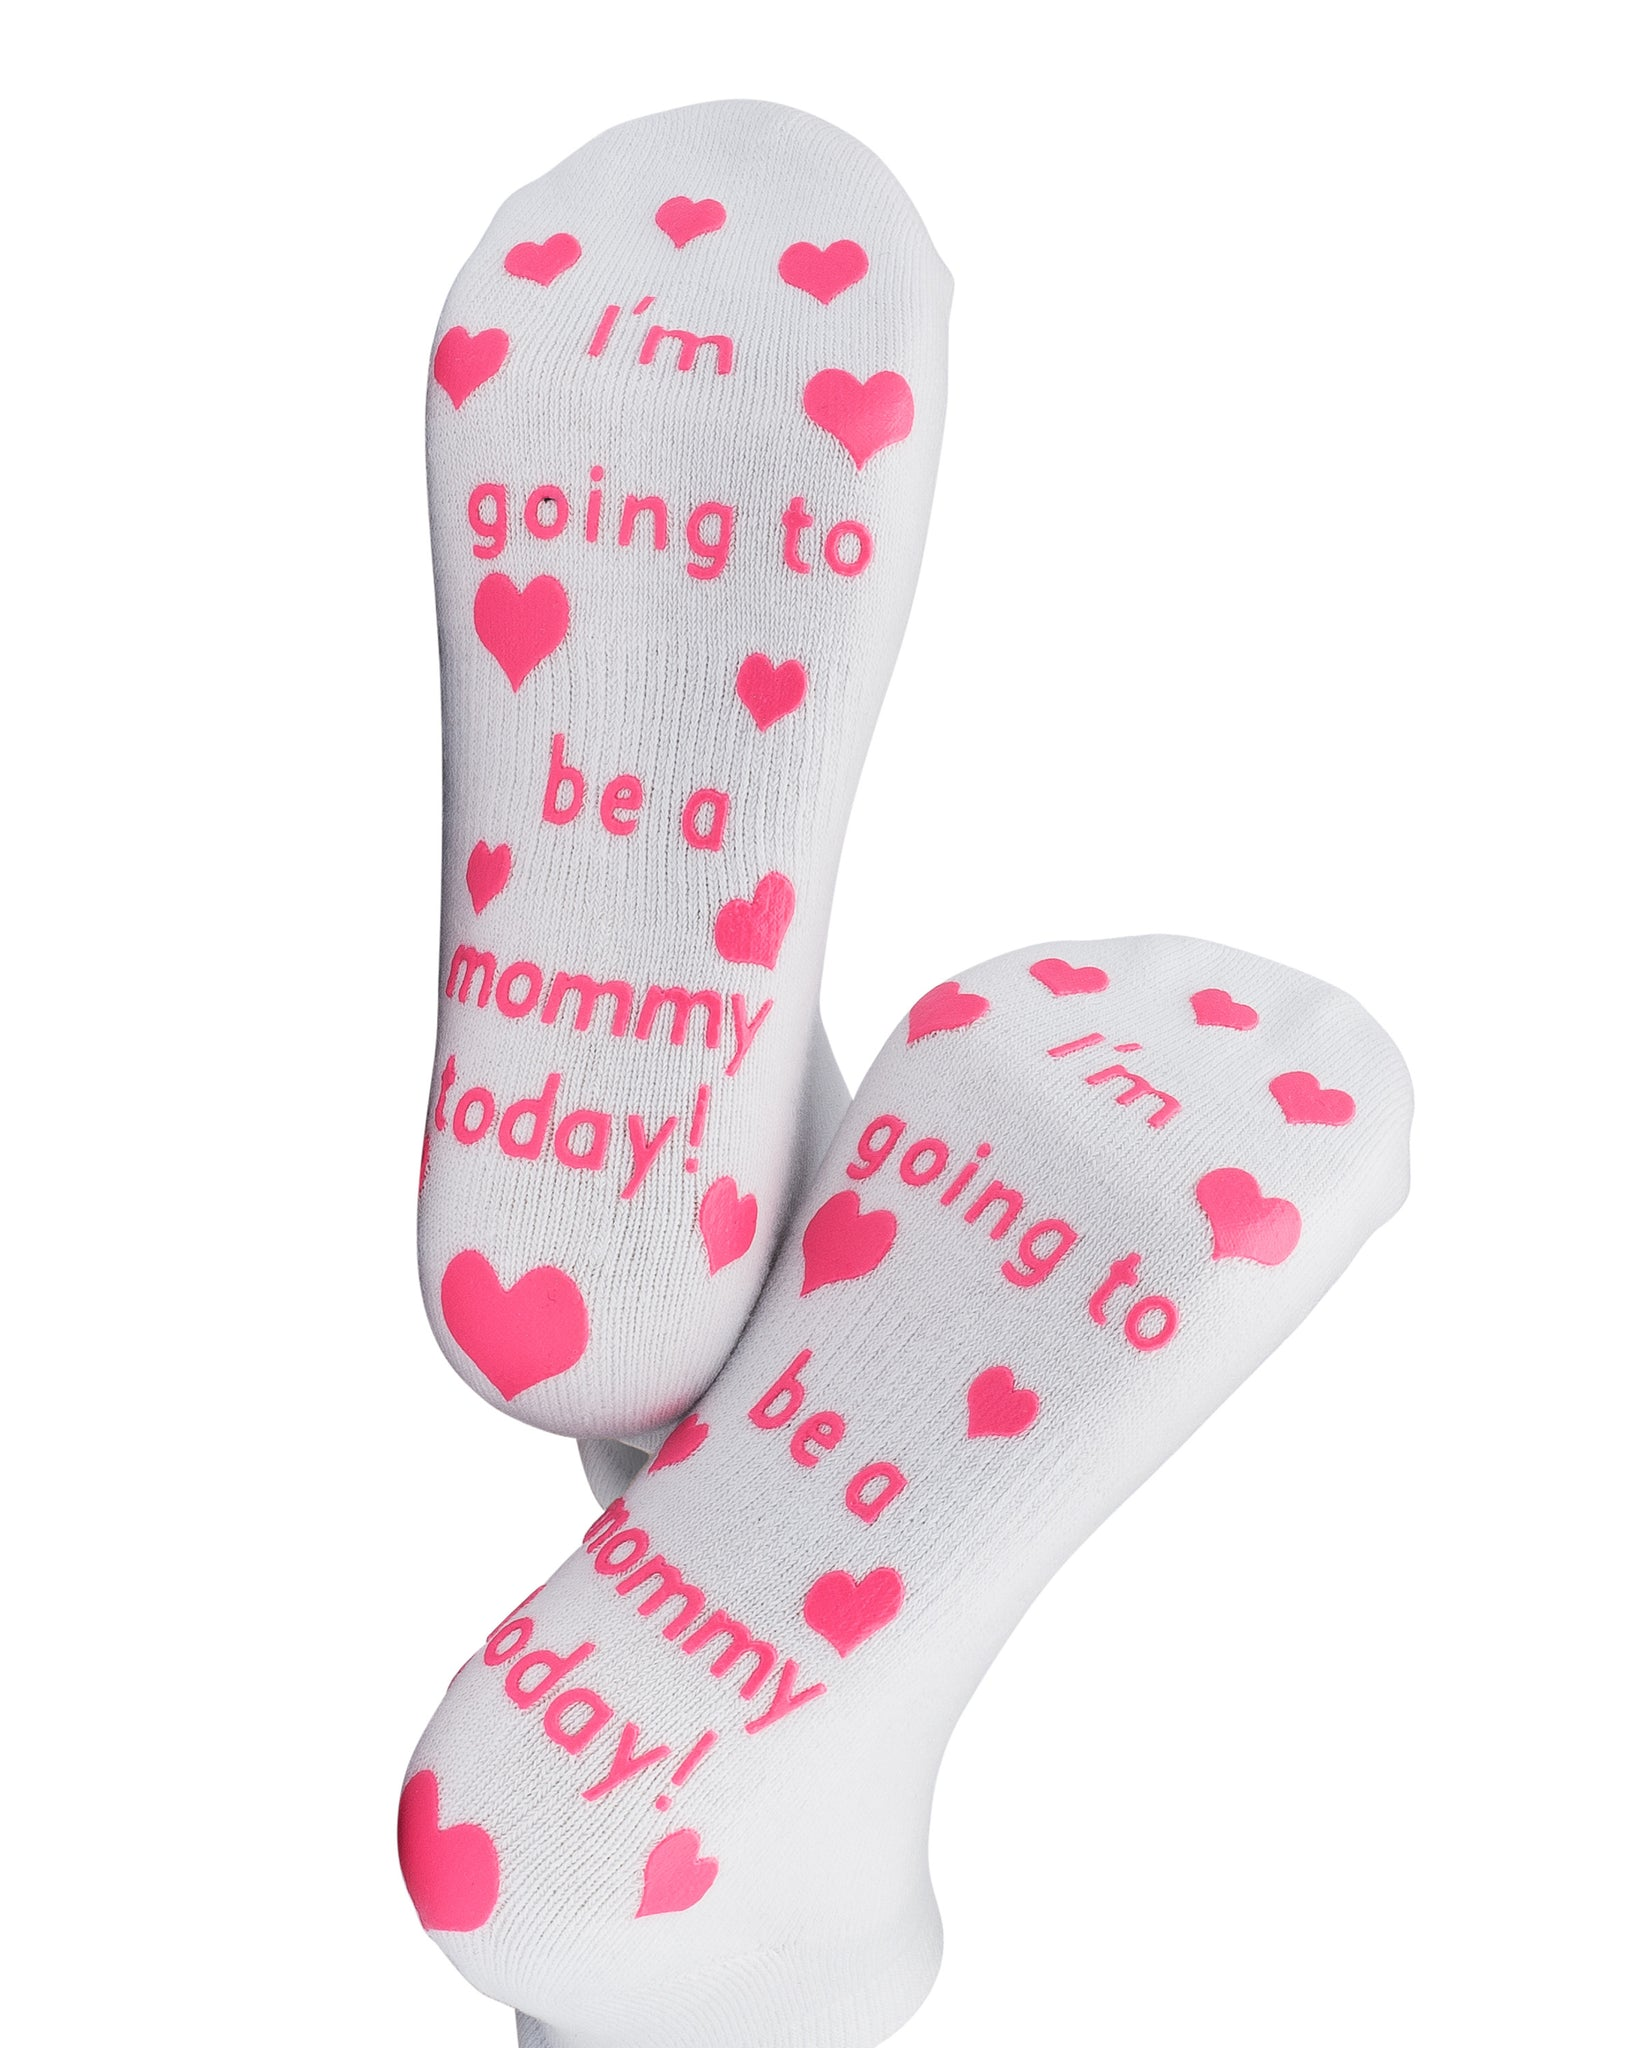 Mummy to Be 2020 with Footprint Printed Design Ladies Hot Pink Socks Present